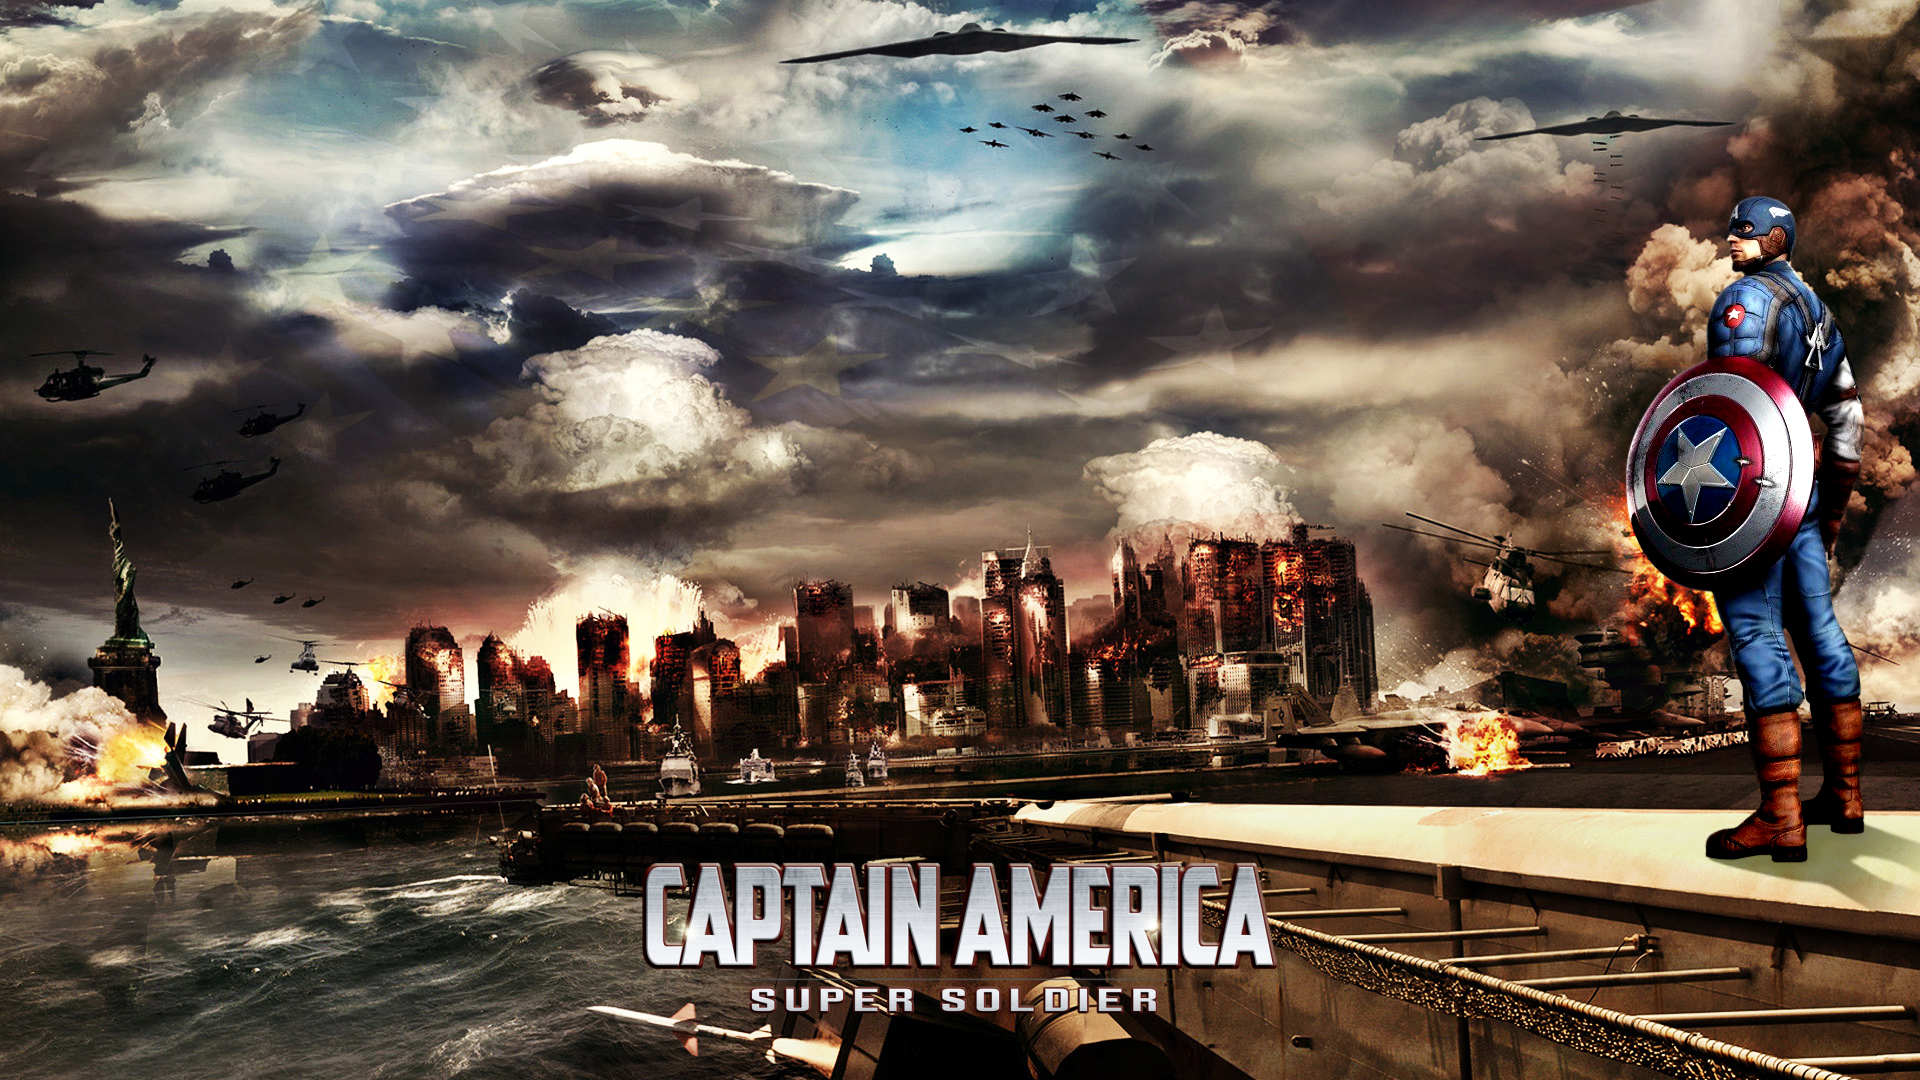 Captain America Wallpapers Awesome Wallpapers 1920x1080